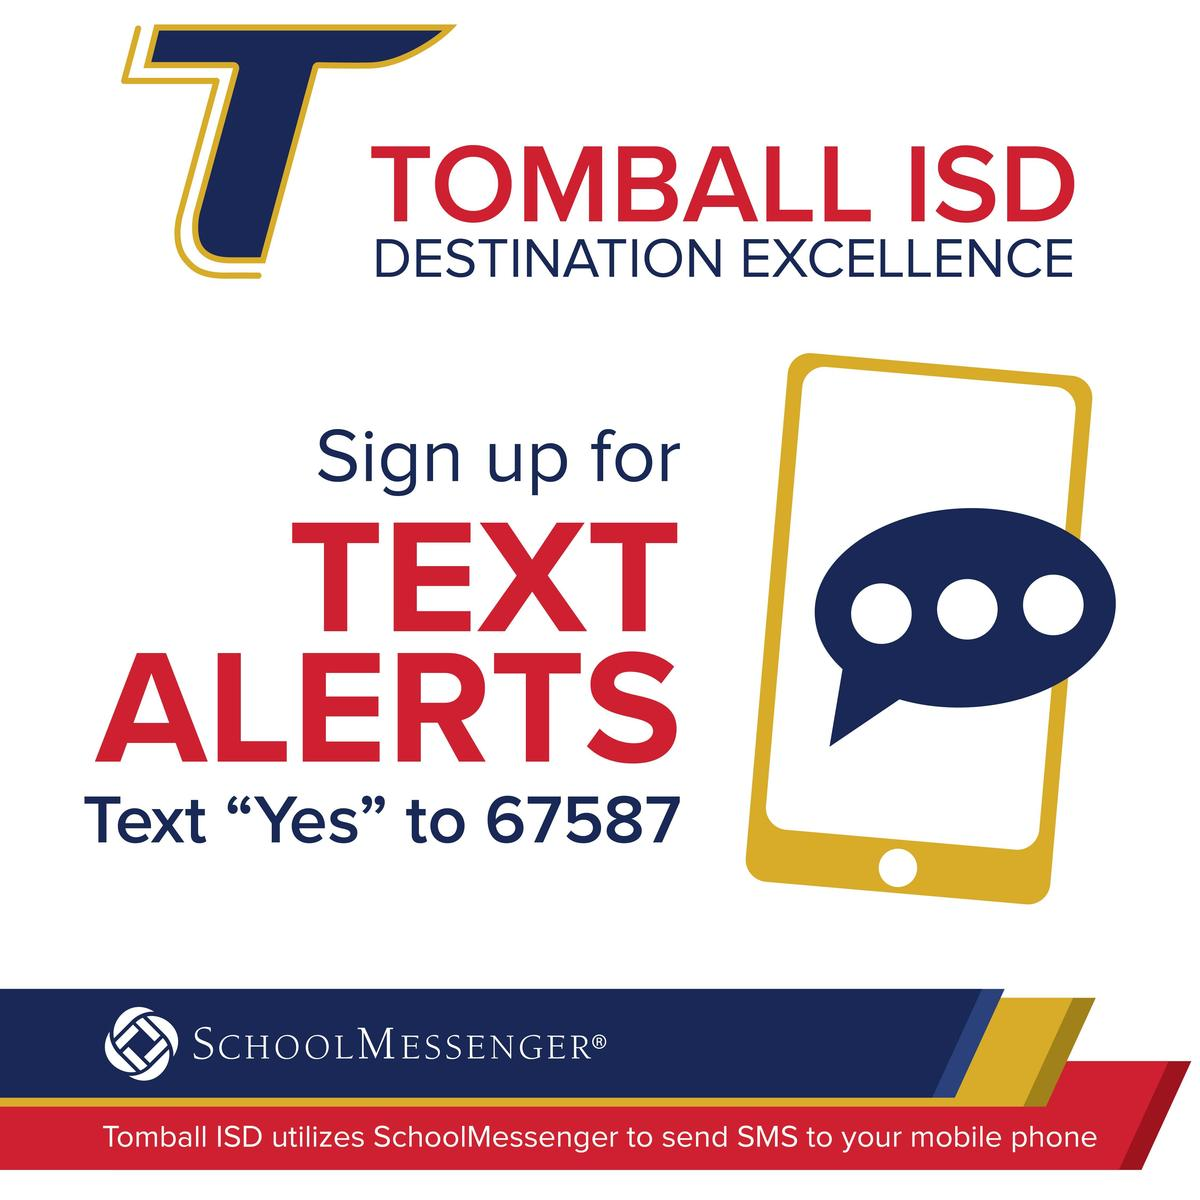 Text Yes to 67587 to receive text alerts from Tomball ISD service by SchoolMessenger